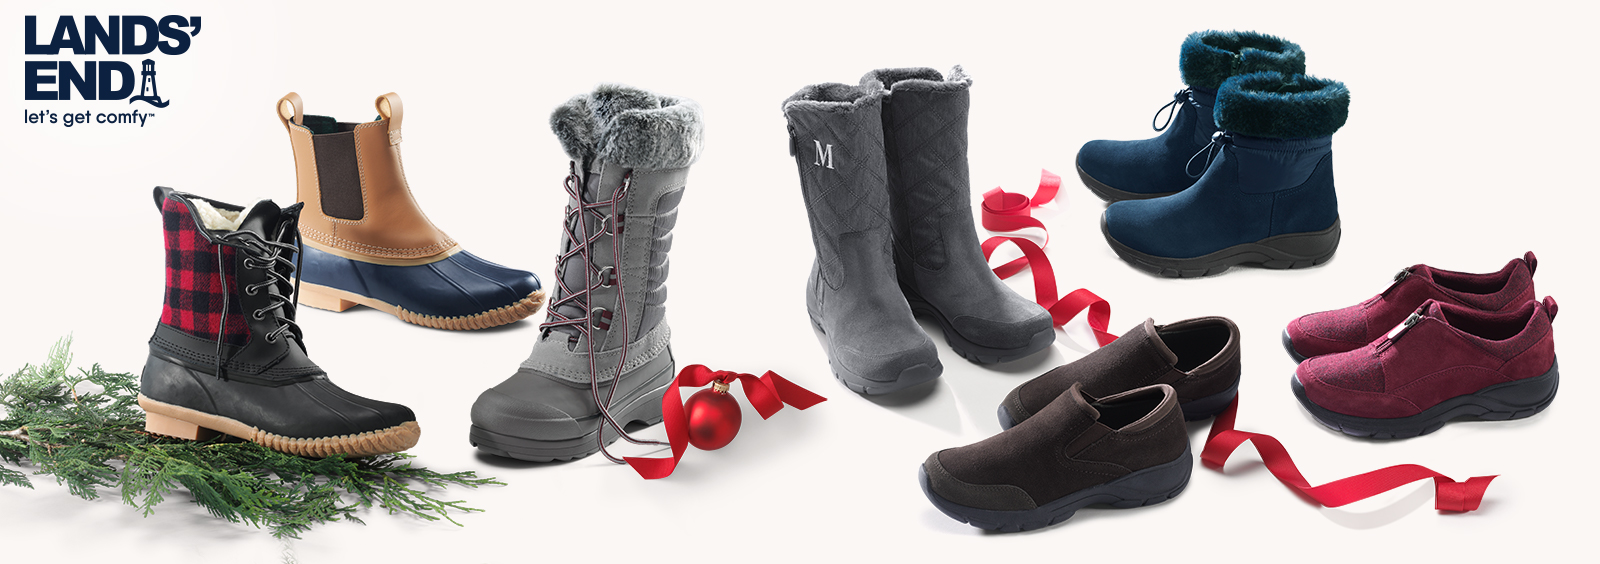 6 Essential Footwear Options to Keep in Your Closet All Winter